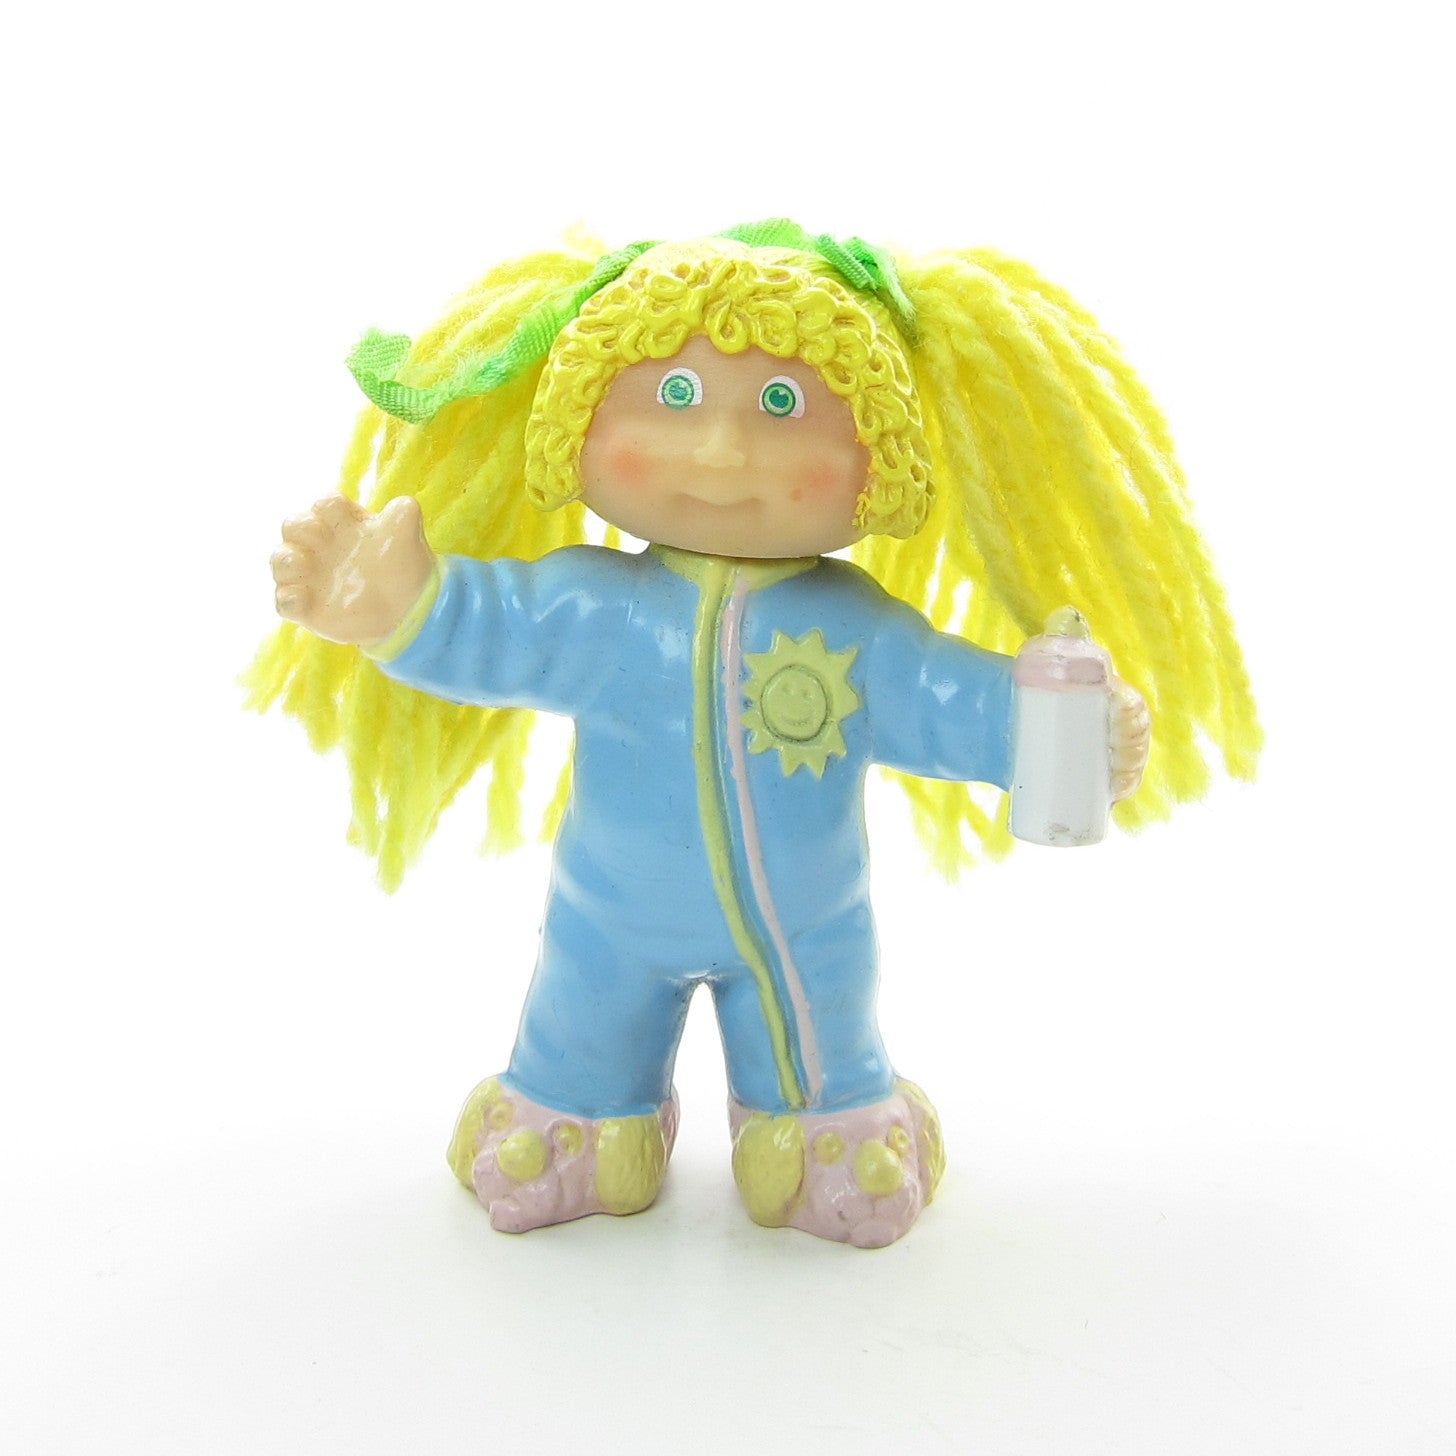 Cabbage Patch Kids PVC figure in pajamas with yarn hair